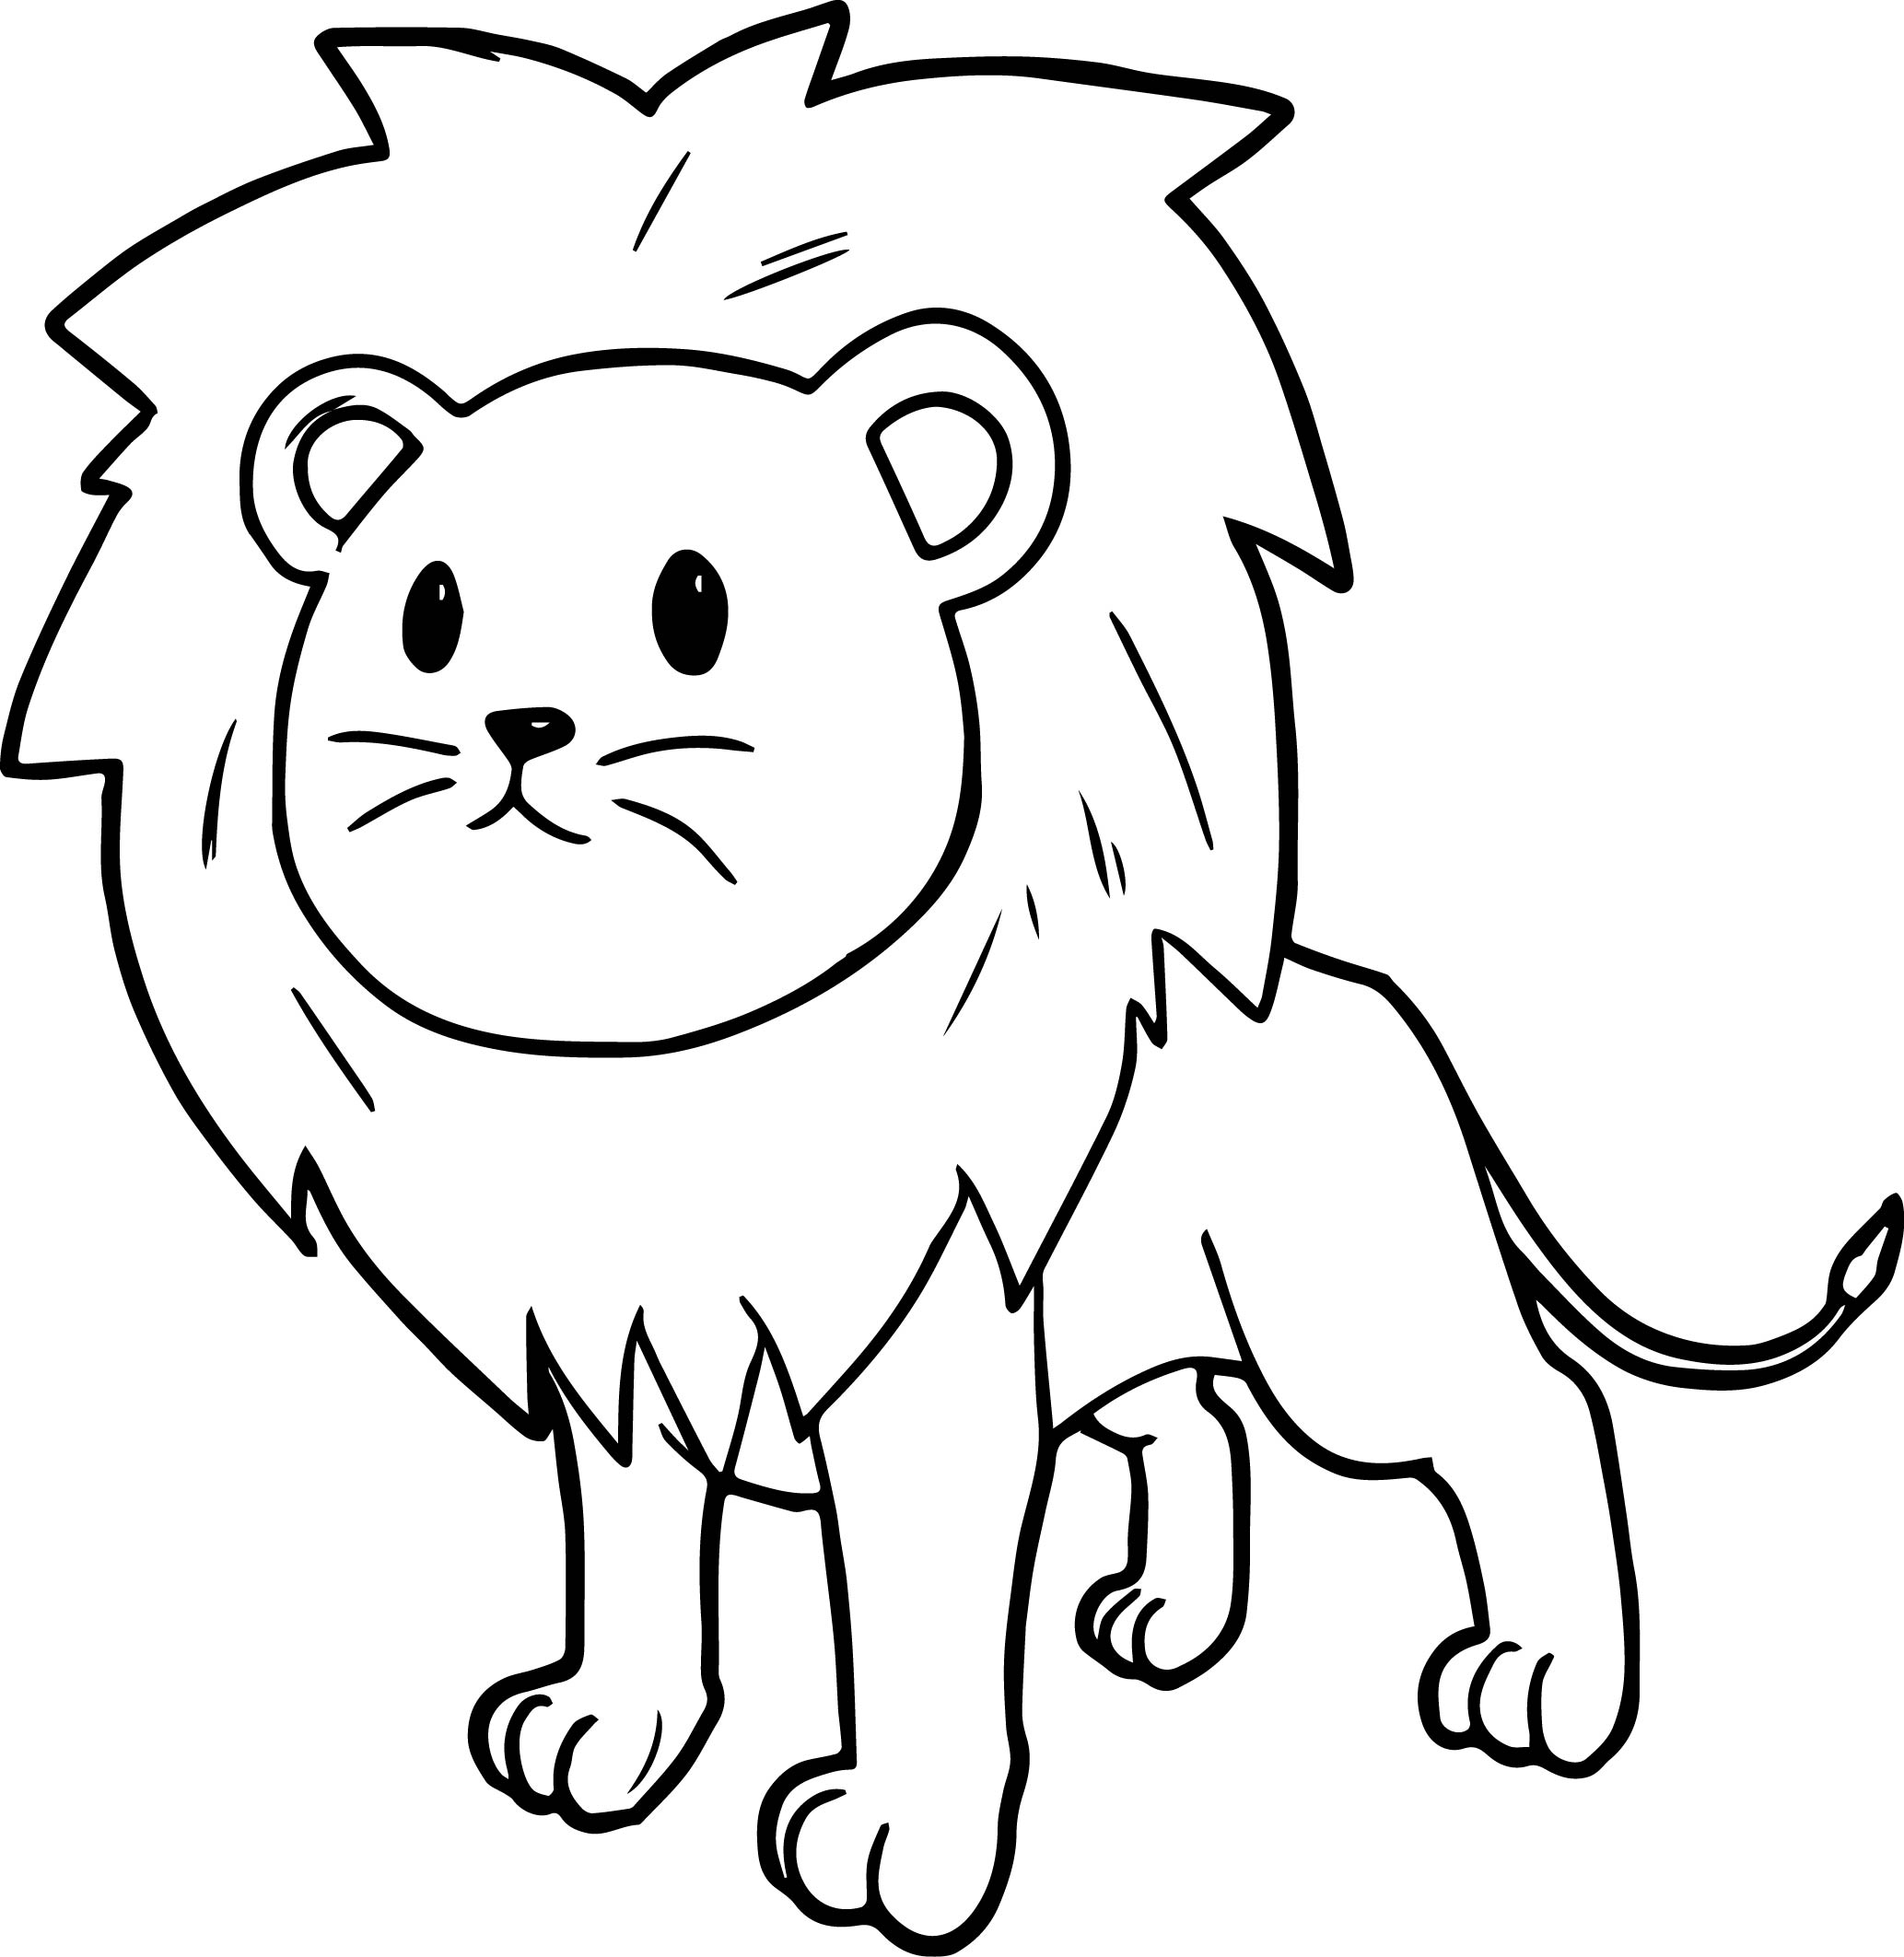 Lion Drawing Cartoon at GetDrawings.com | Free for personal use Lion ...